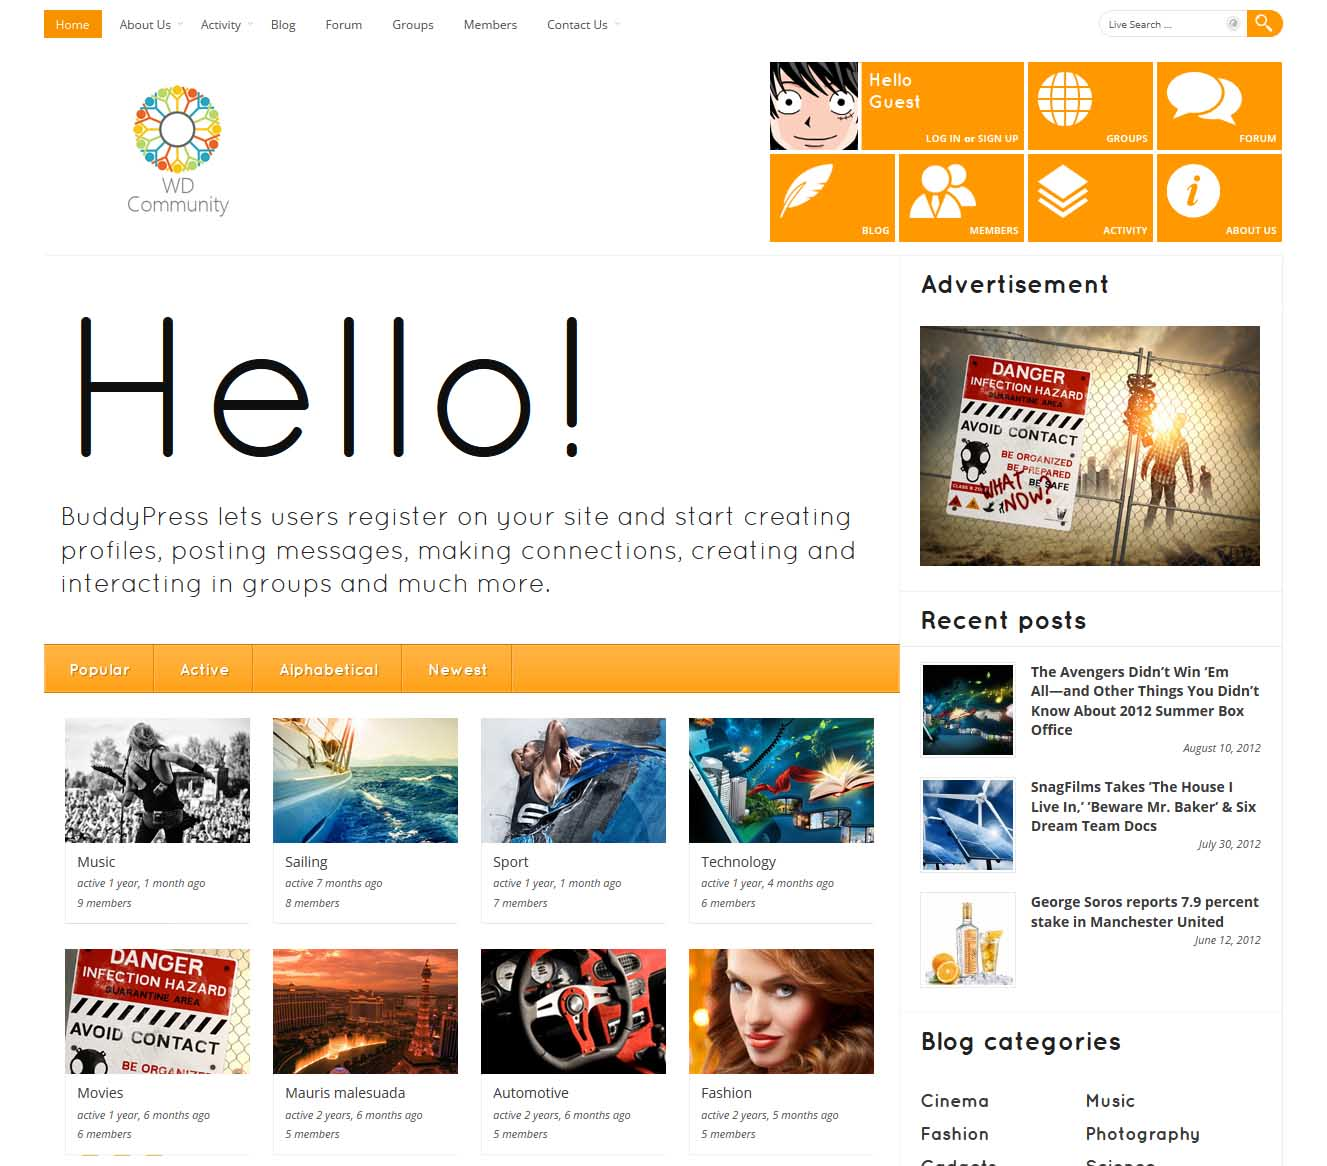 001 - WD-community(Landing-Page-Thumb)